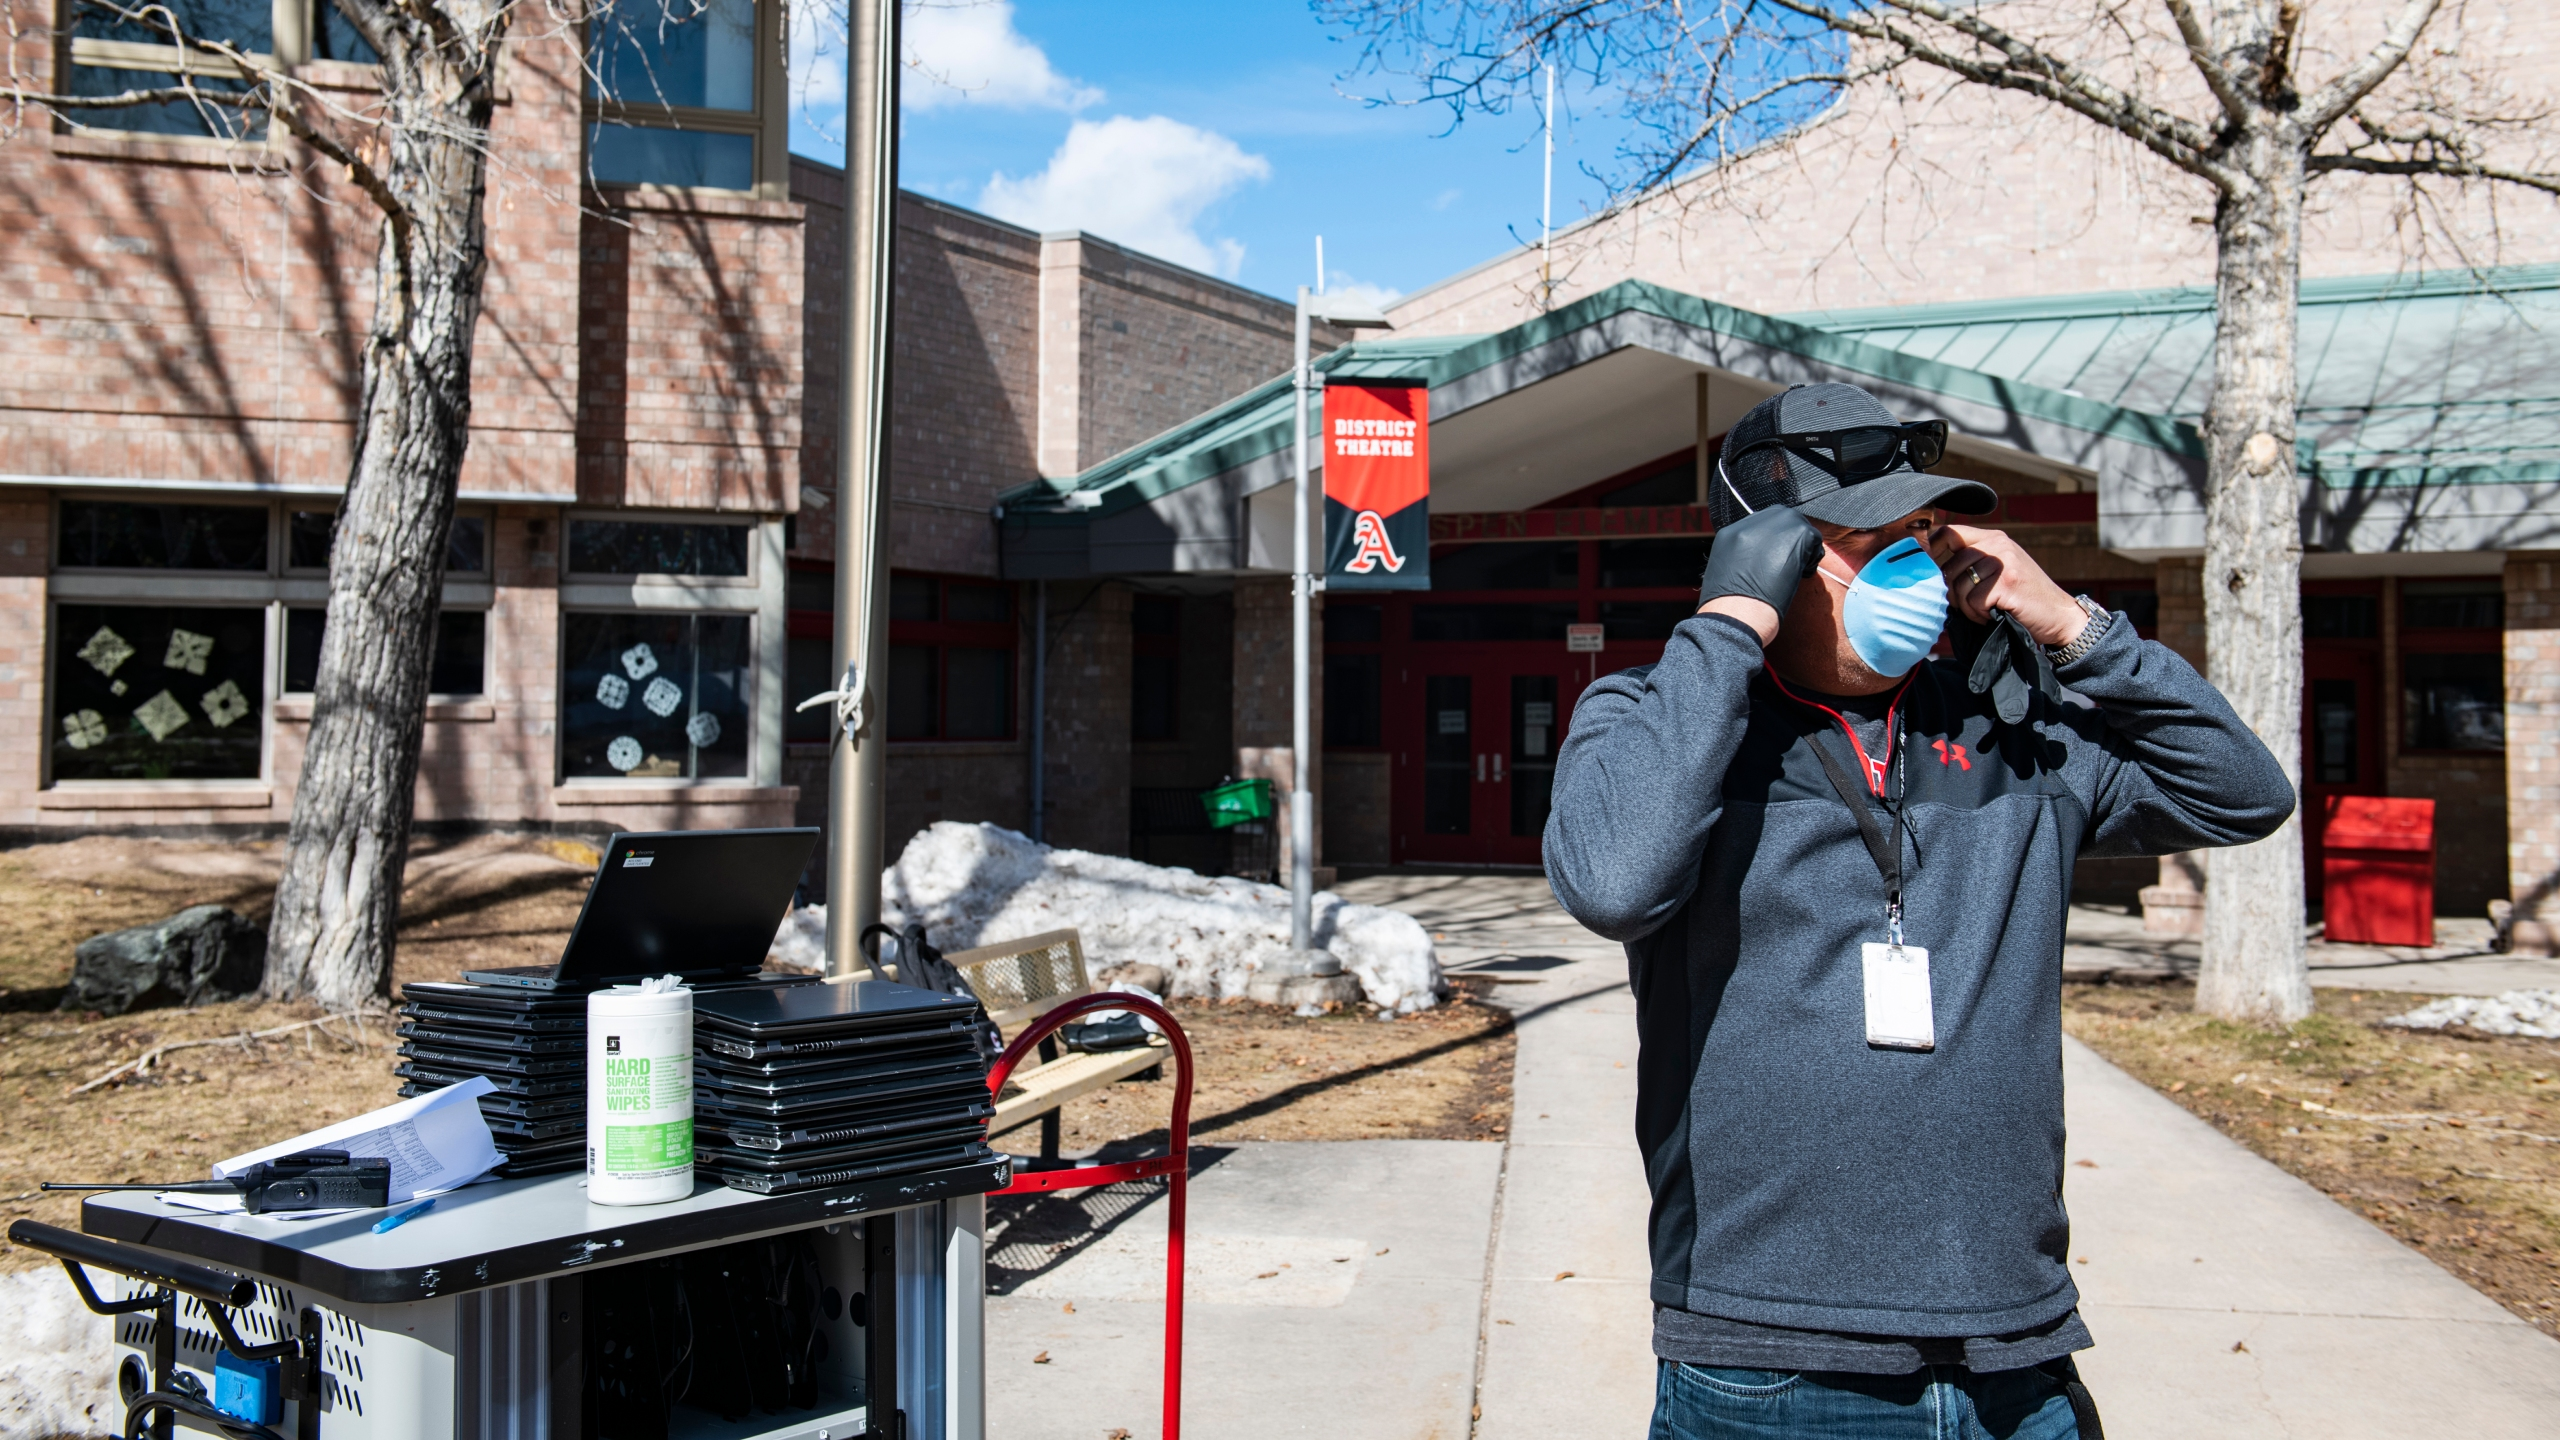 Aspen Elementary School technology integrator Dave Fuentes puts his mask on while preparing and distributing student's laptops outside of the school on Wednesday, April 1, 2020. (Kelsey Brunner/The Aspen Times via AP)